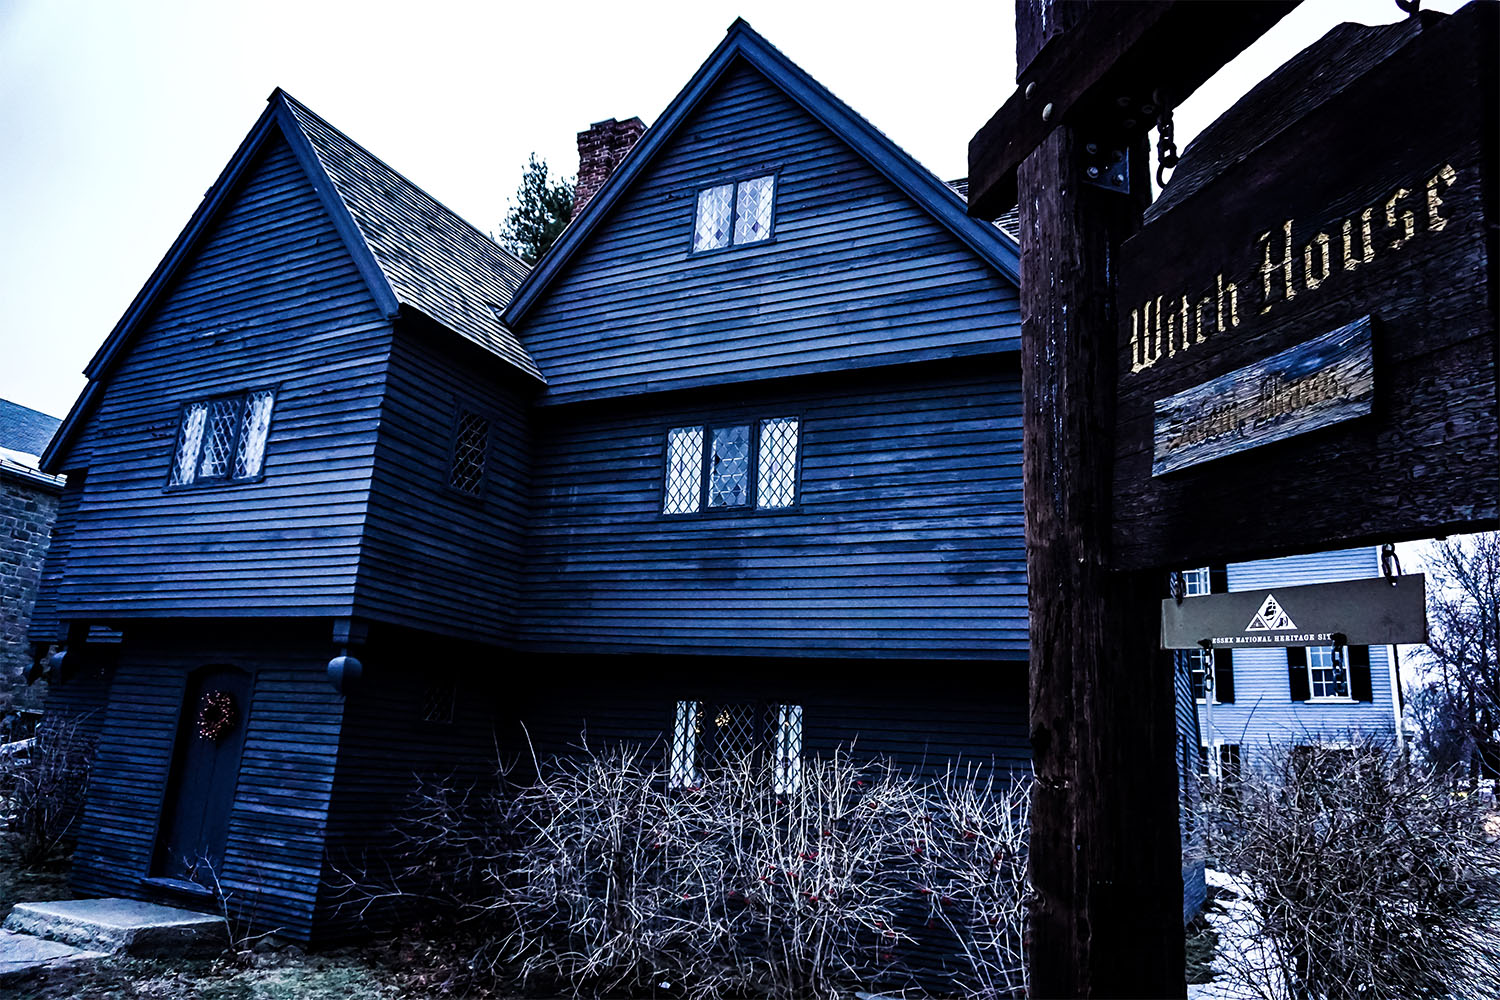 16 Of The Most Haunted Places In The World - Hostelworld